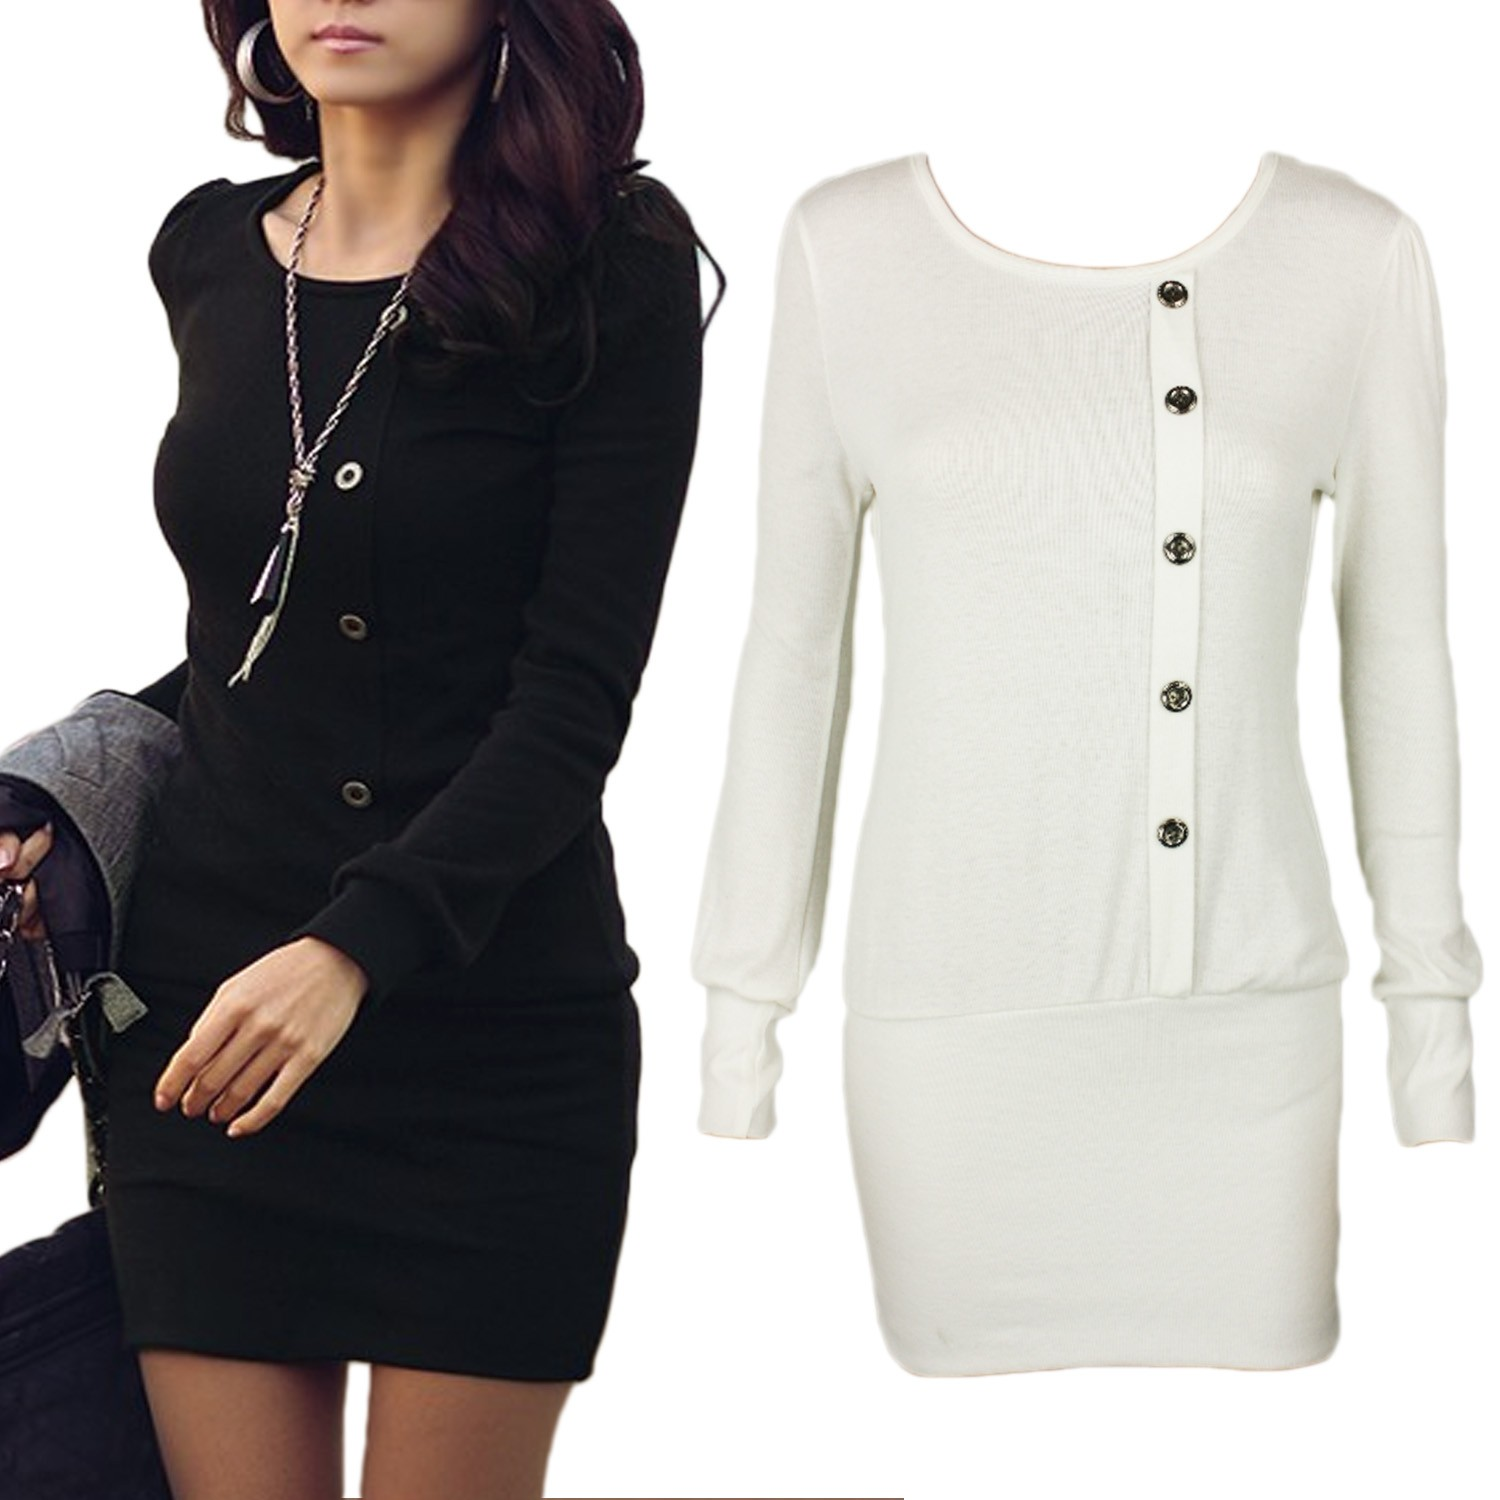 Black/White Gorgeous Womens Graceful NEW Long Sleeve Bodycon Mini Dress